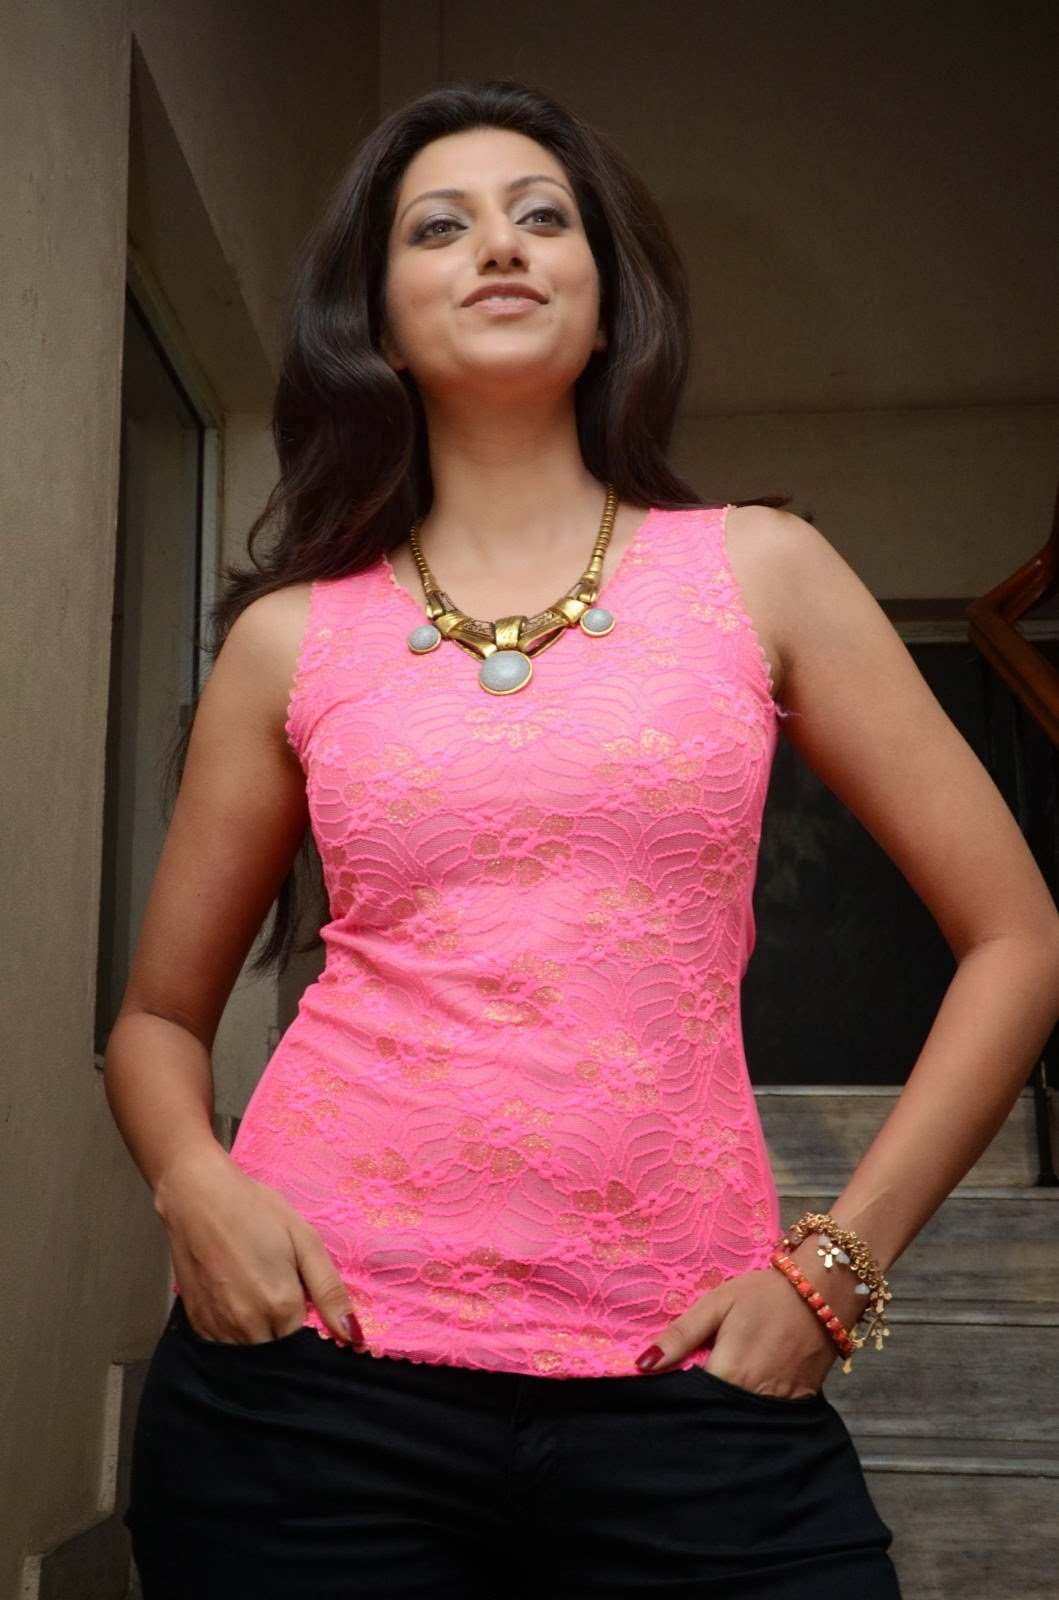 Sexy and curvy Hamsa nandini latest photo gallery in pink top